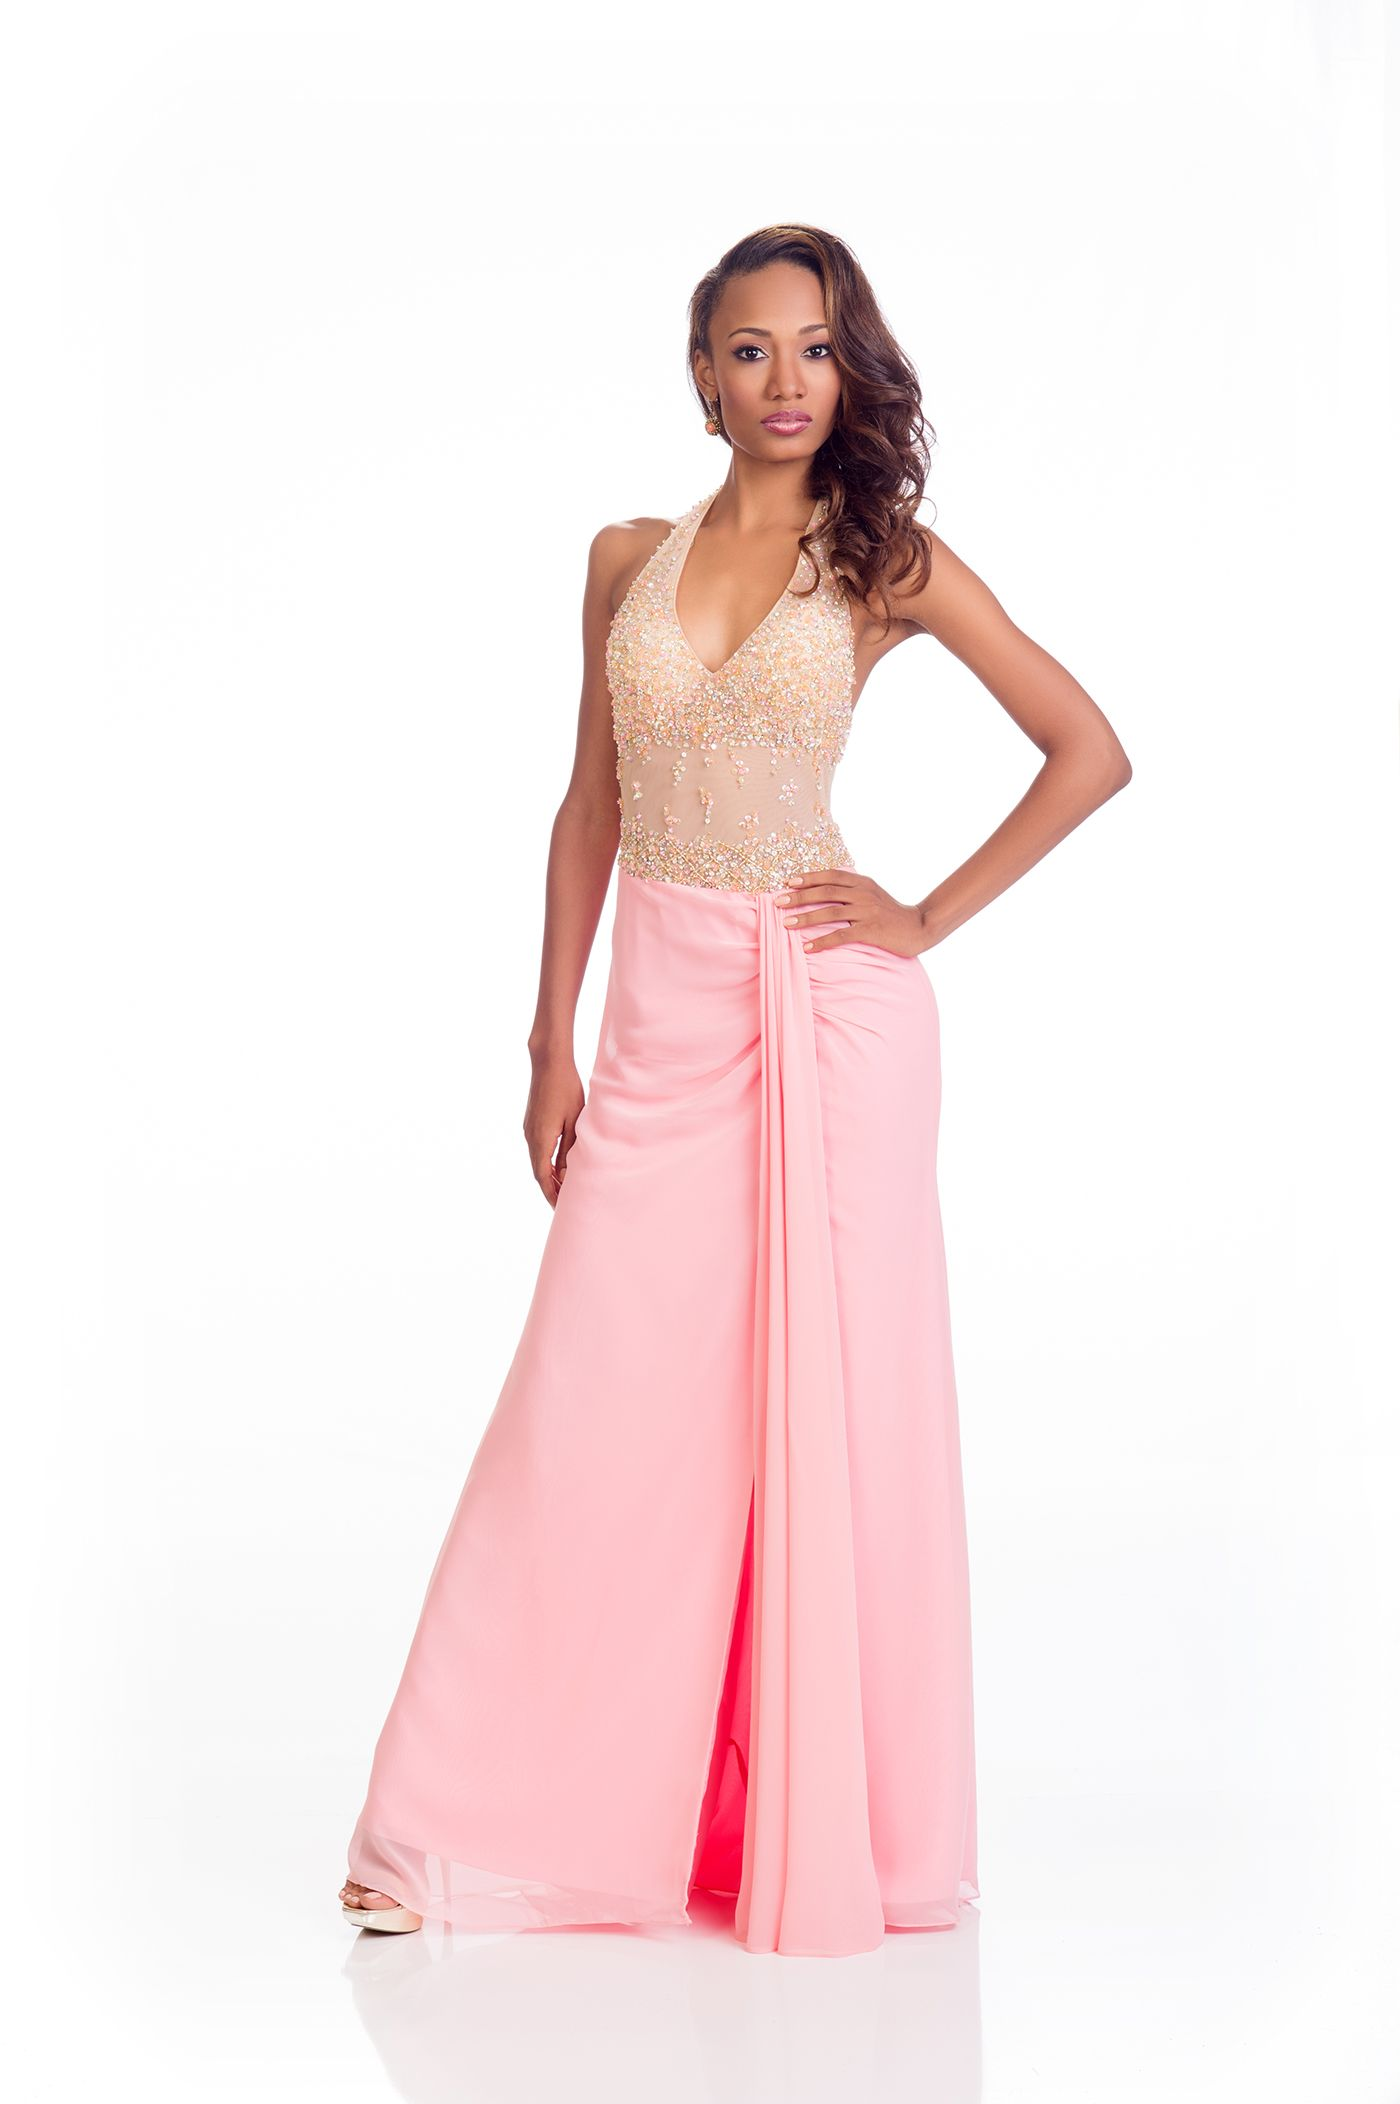 33 Gloriously Glamorous Miss Universe Evening Gowns